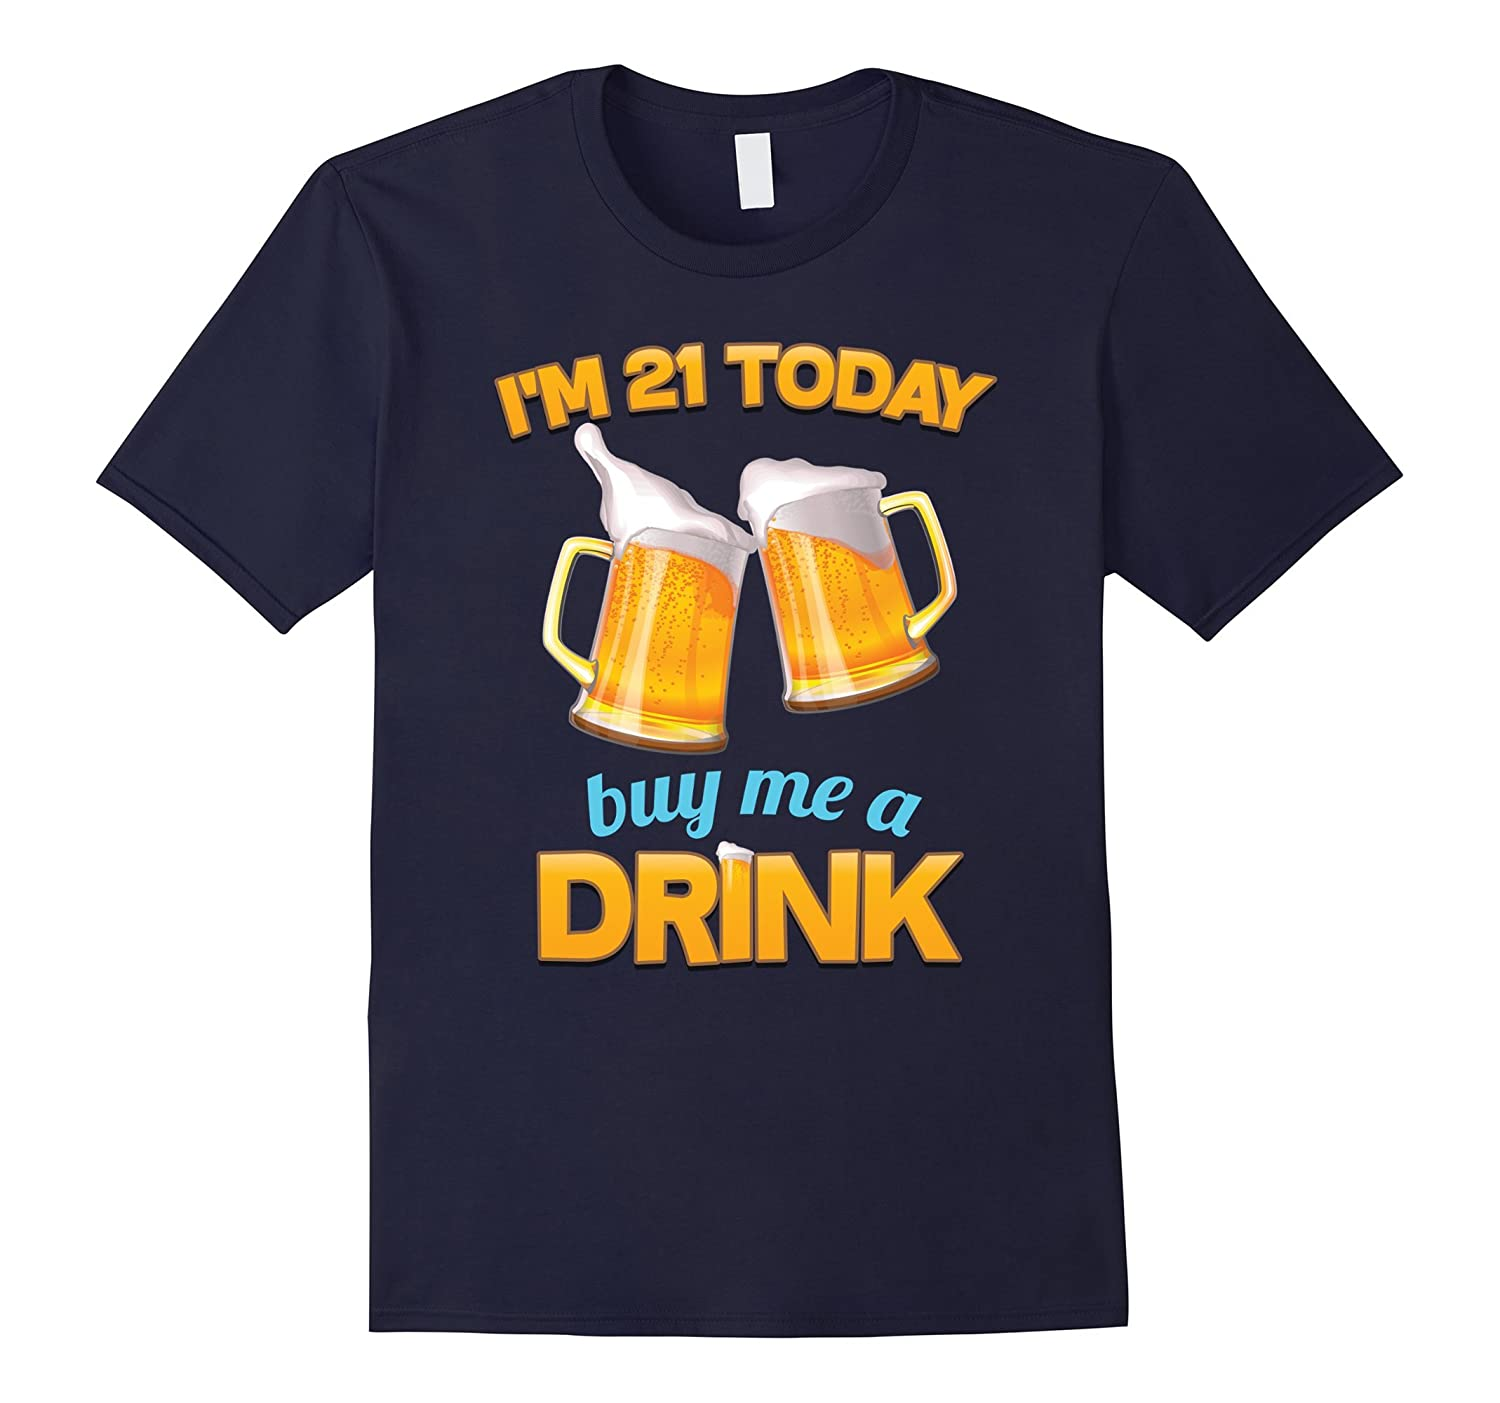 21st Birthday T-shirt, | I'm 21 Today, Buy Me a Drink, Beer-ah my shirt one gift